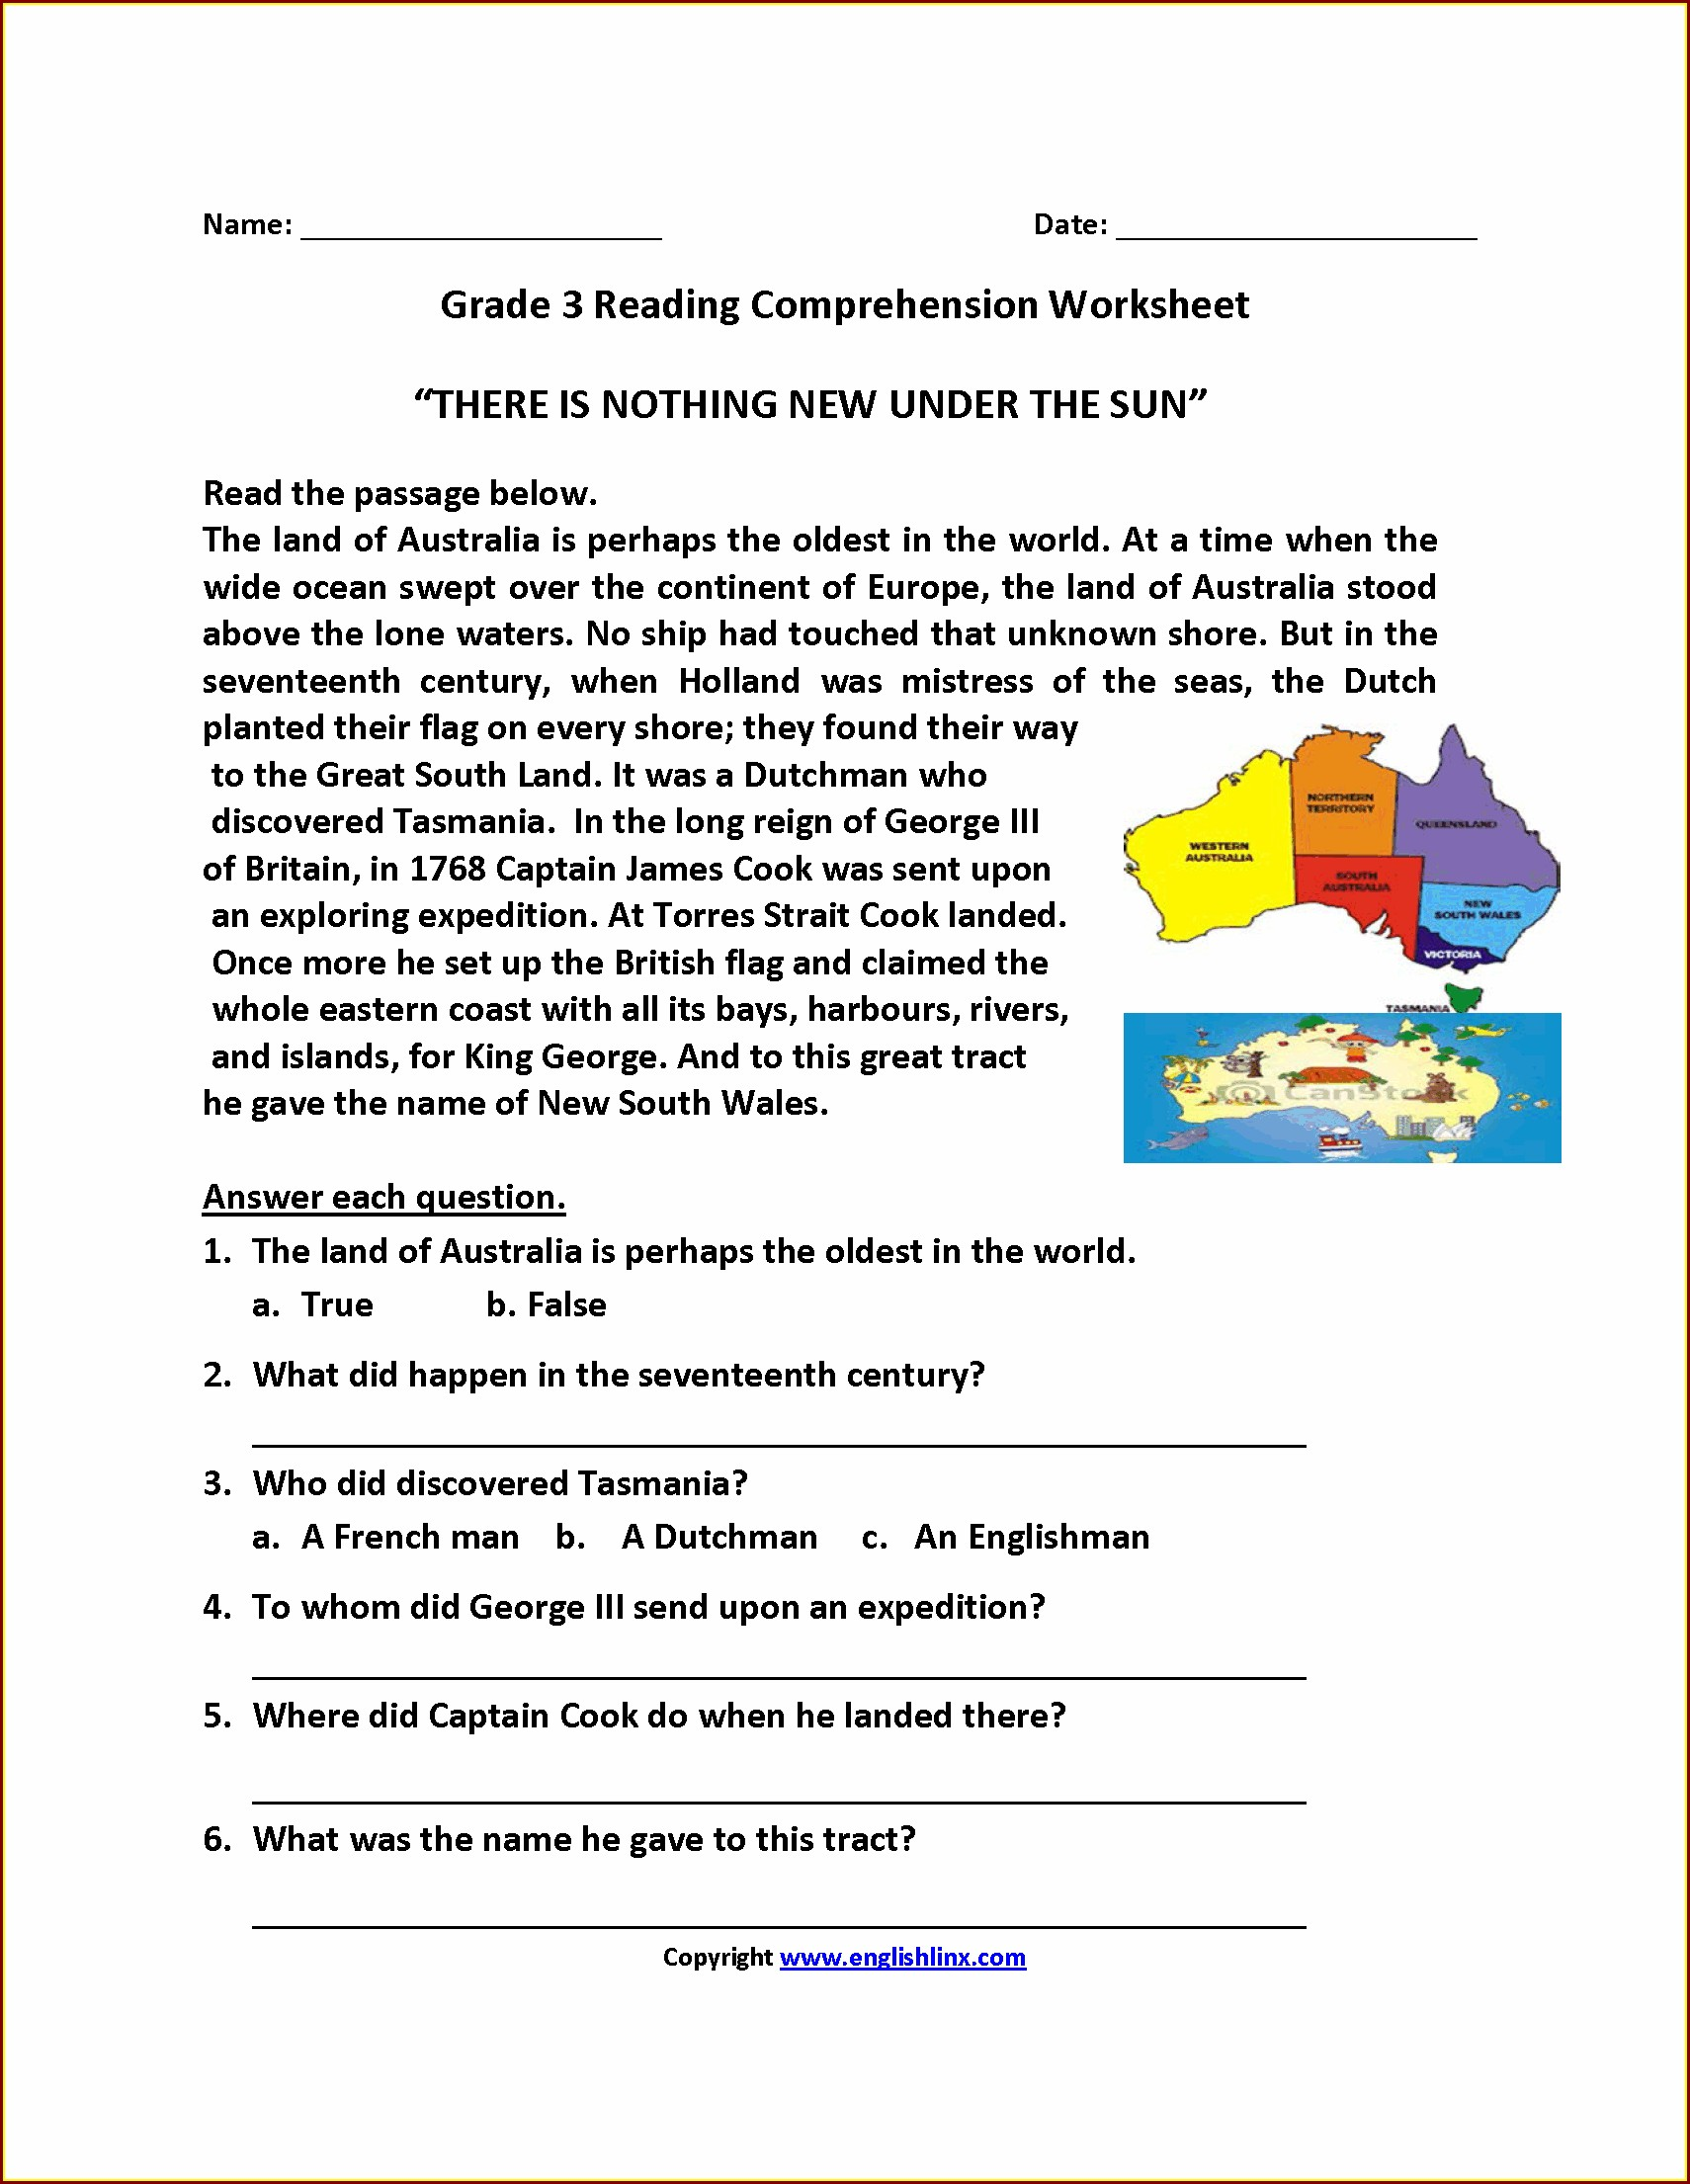 Comprehension Worksheet Year 3